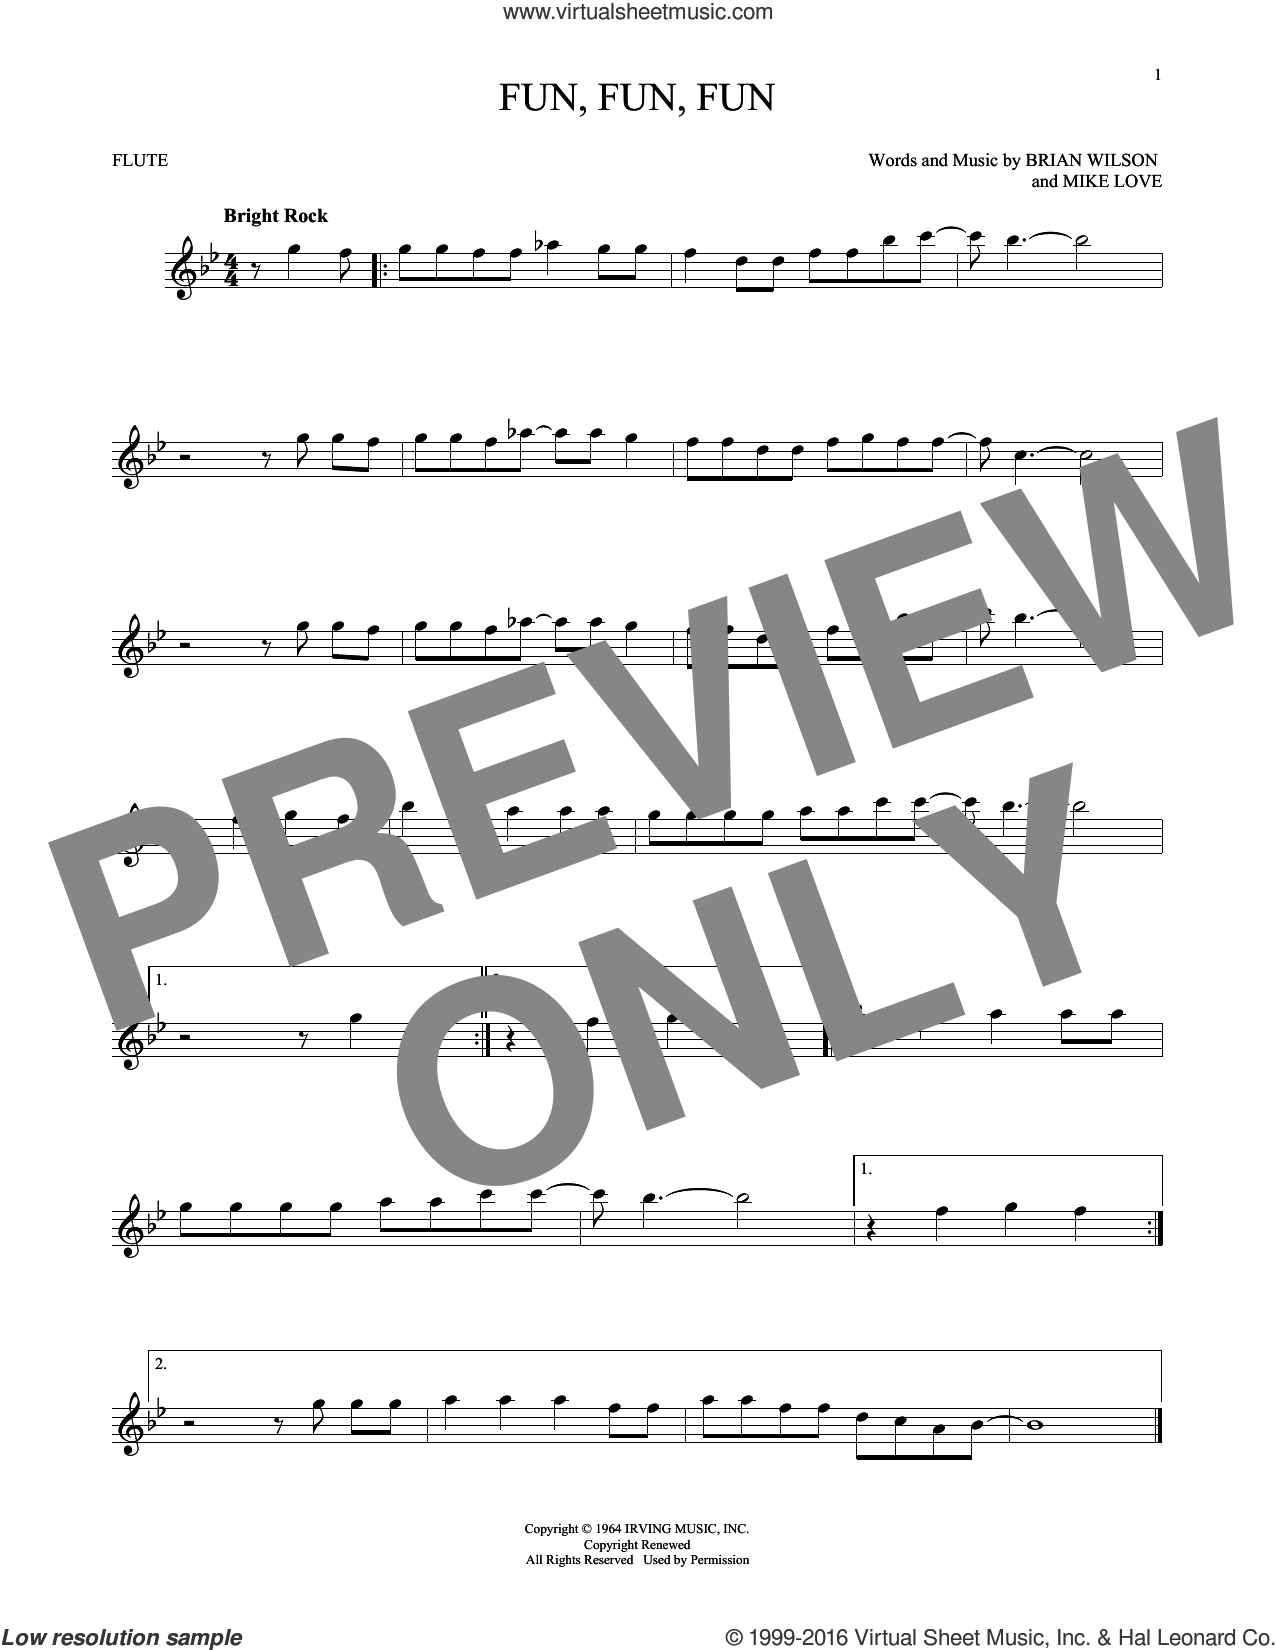 Fun, Fun, Fun sheet music for flute solo by The Beach Boys, Brian Wilson and Mike Love, intermediate skill level